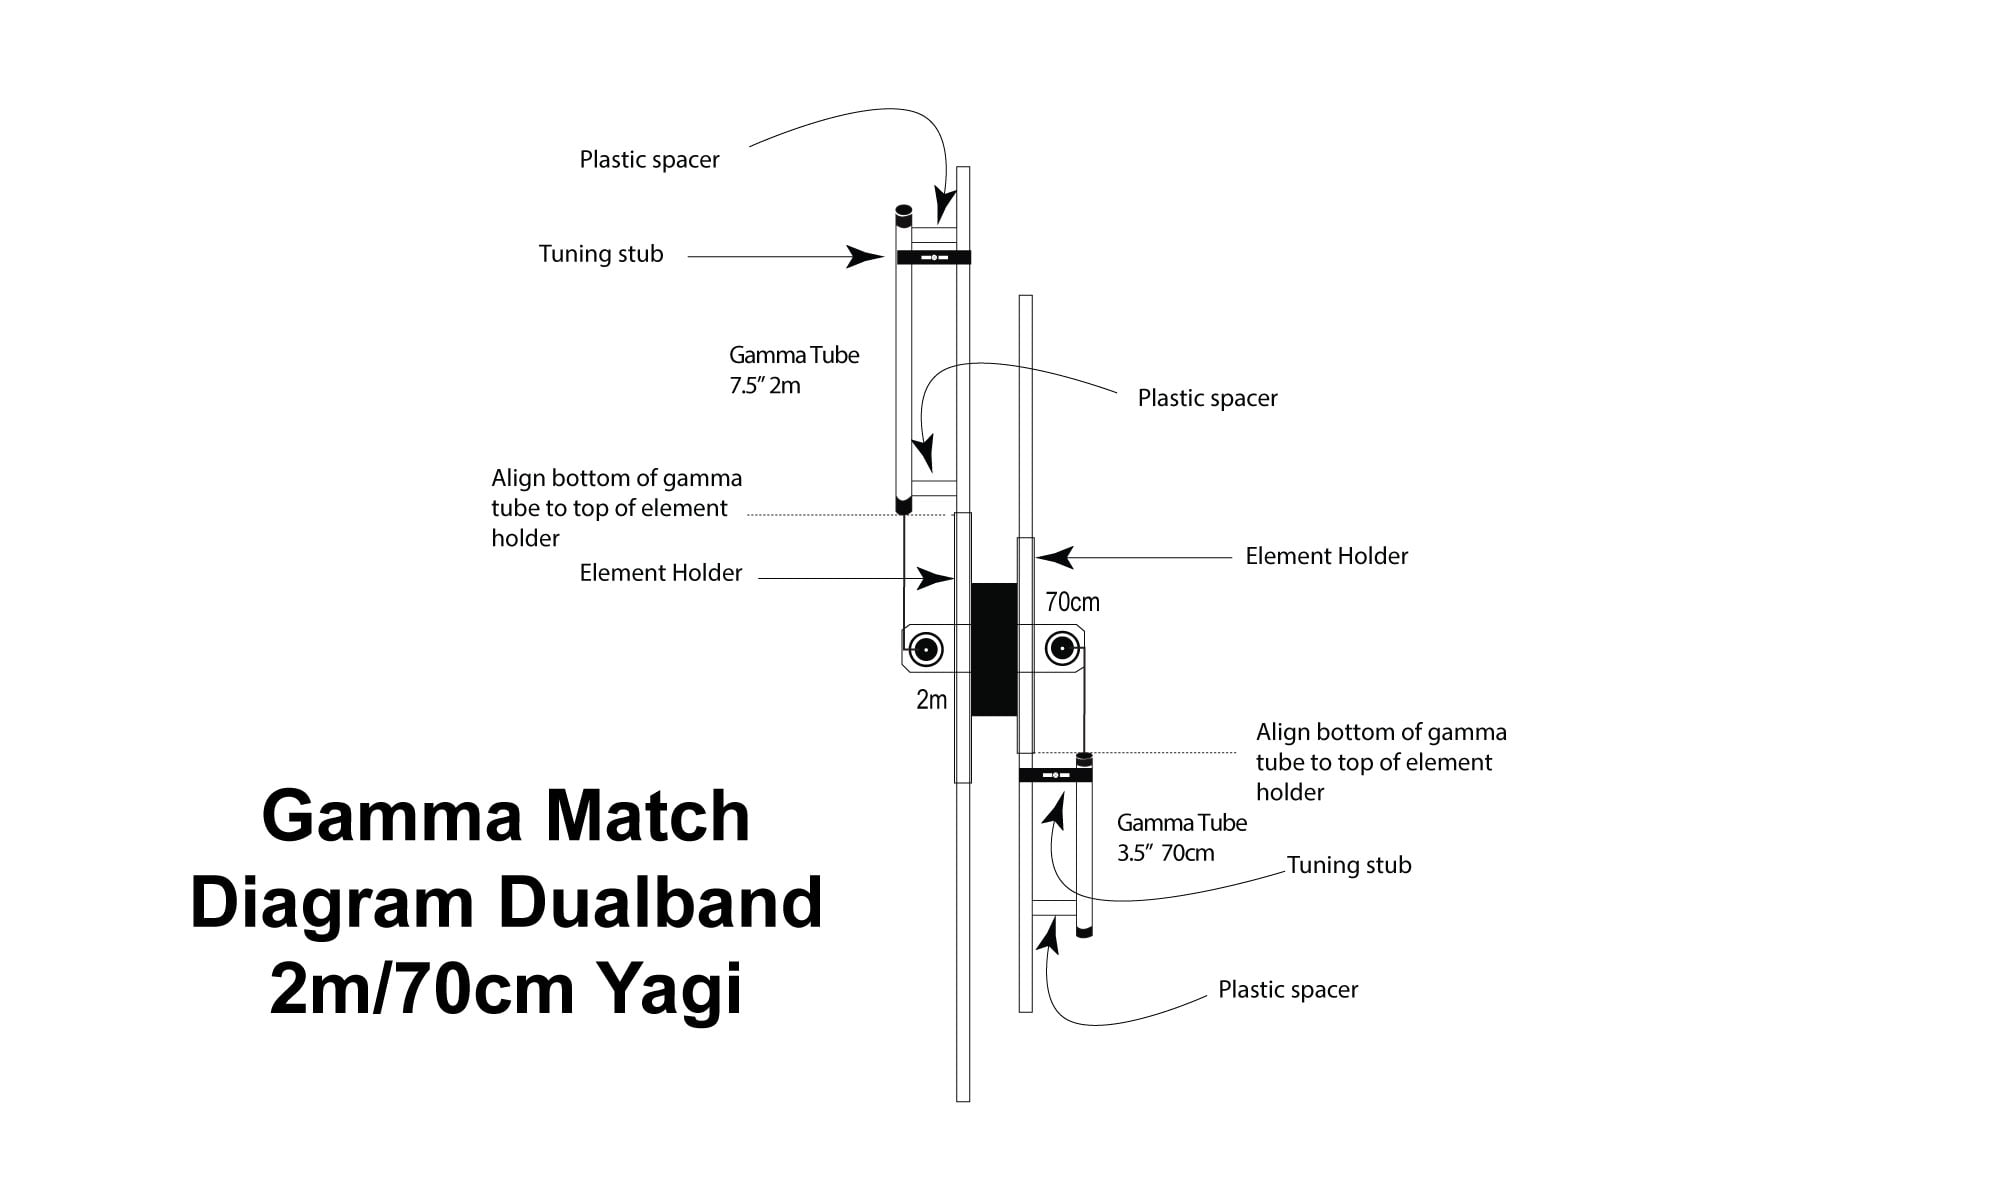 Gamma Match for Dualband Yagi 3 Elements c 5 Elements 2m/70cm